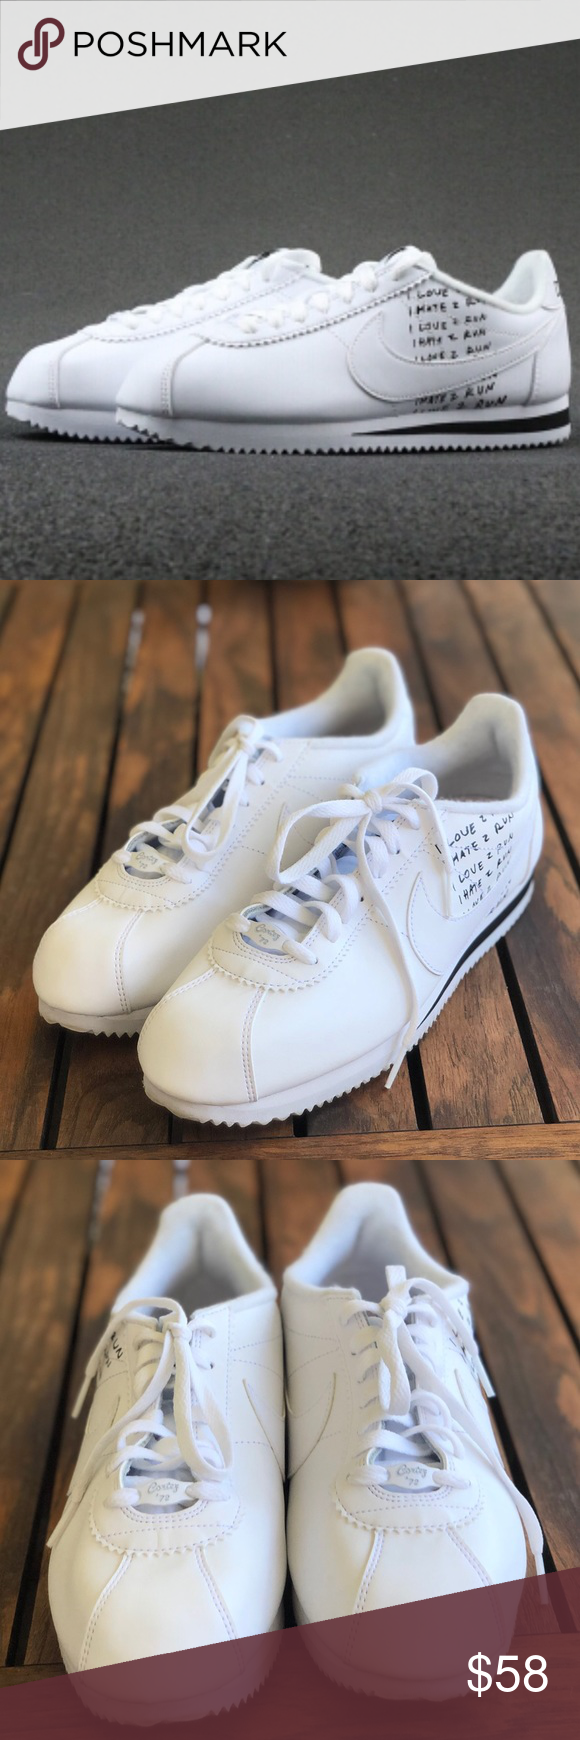 Nike Classic Cortez x Nathan Bell size 9.5 Nike Classic